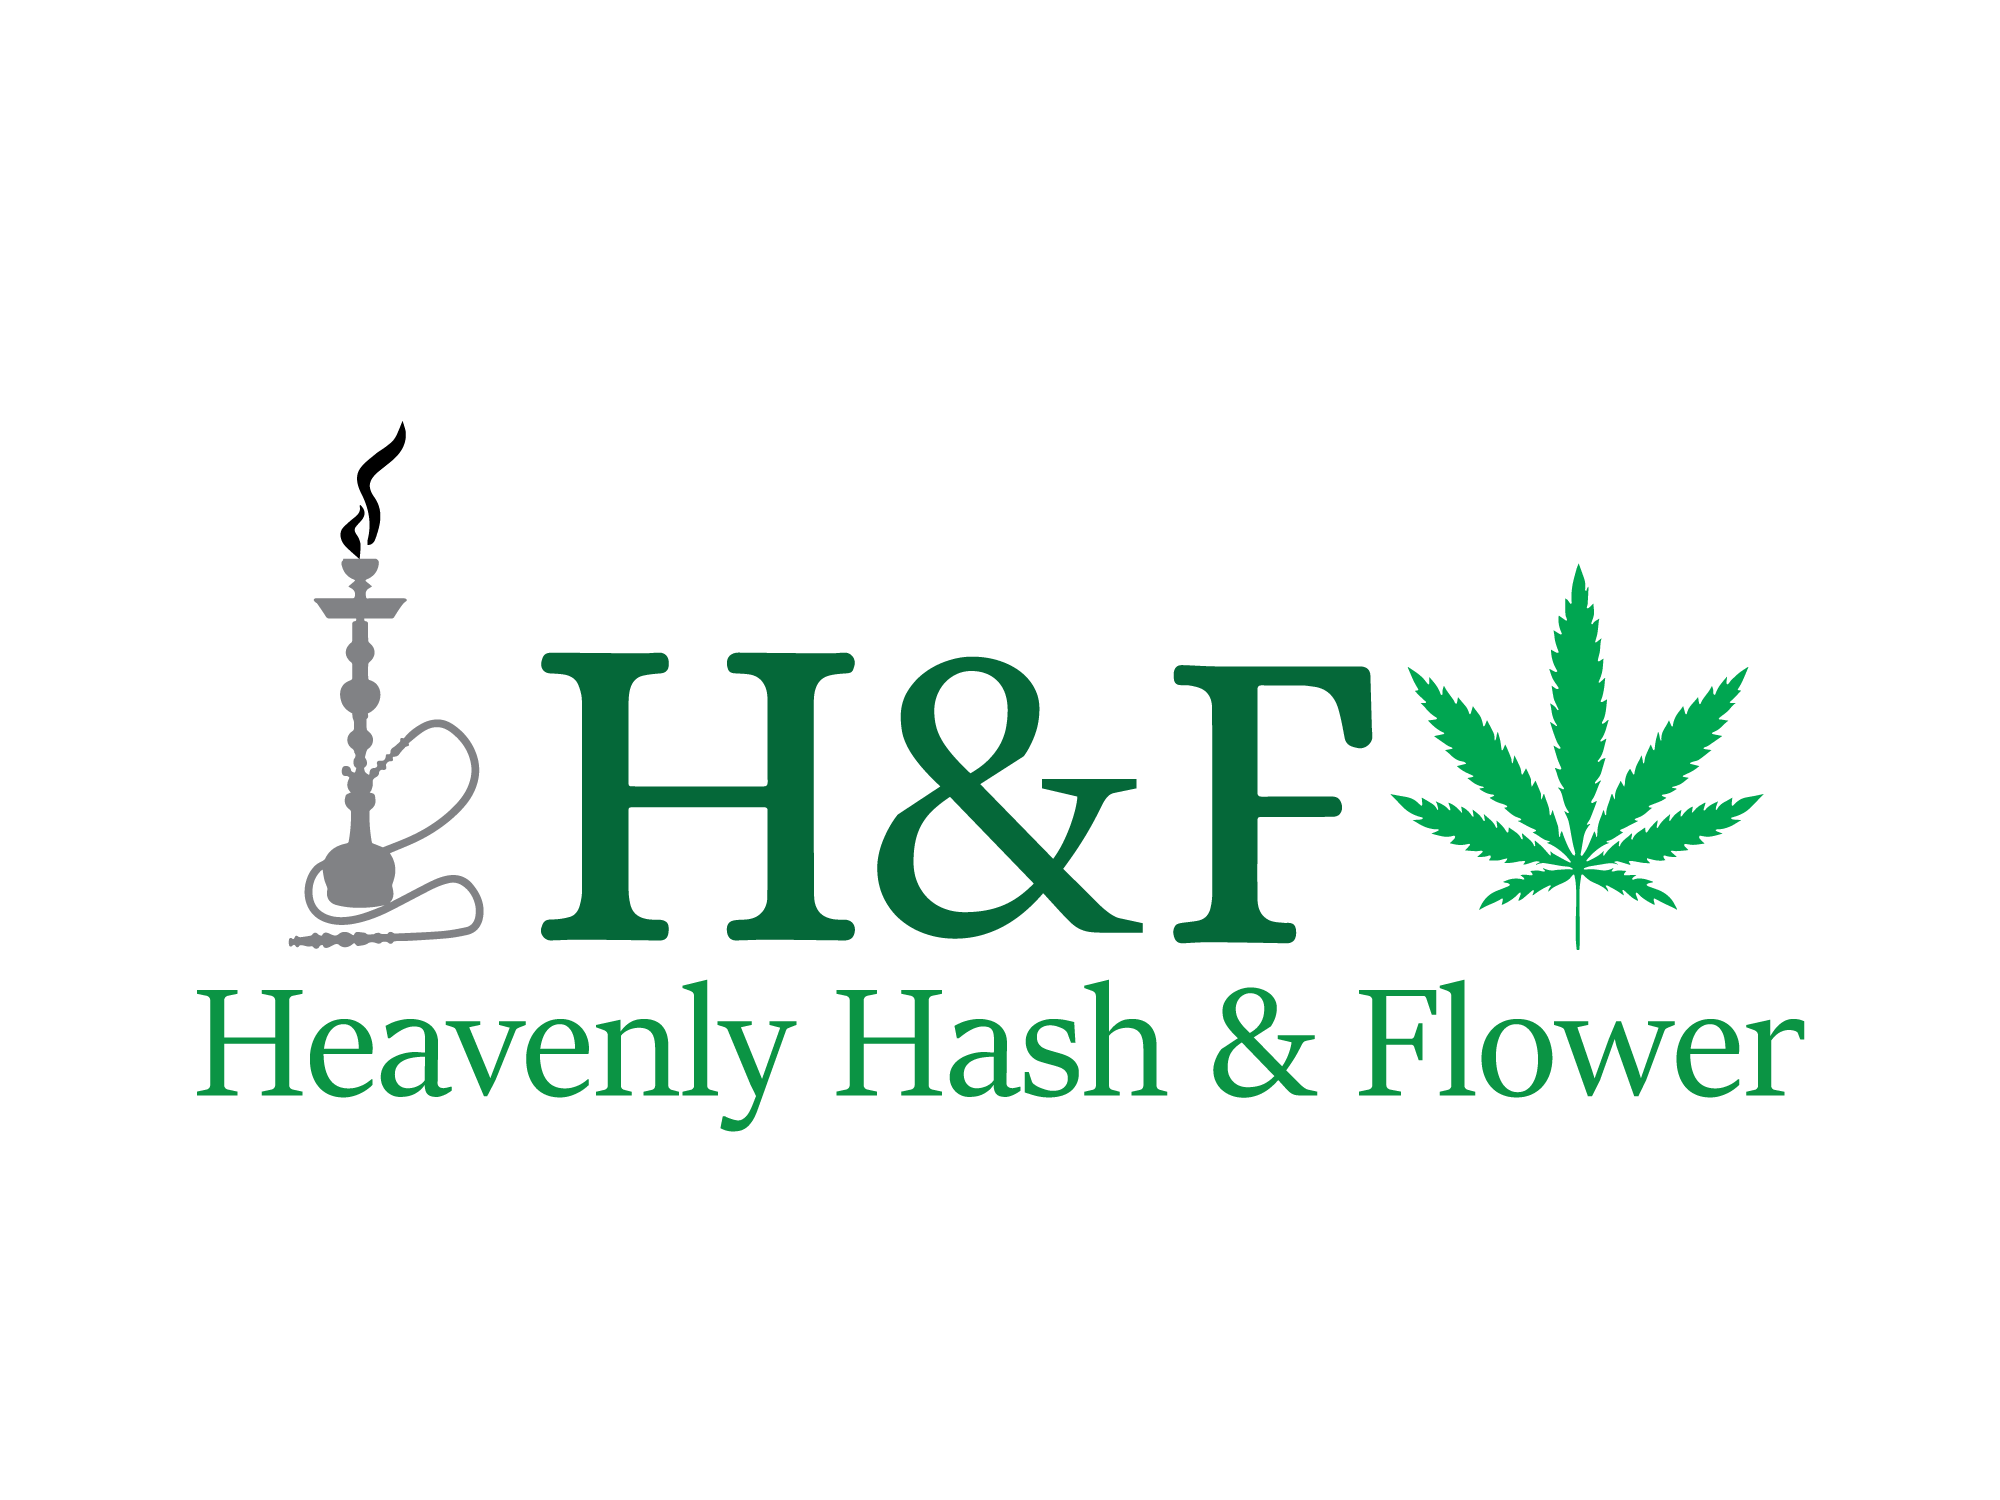 Heavenly Hash & Flowers